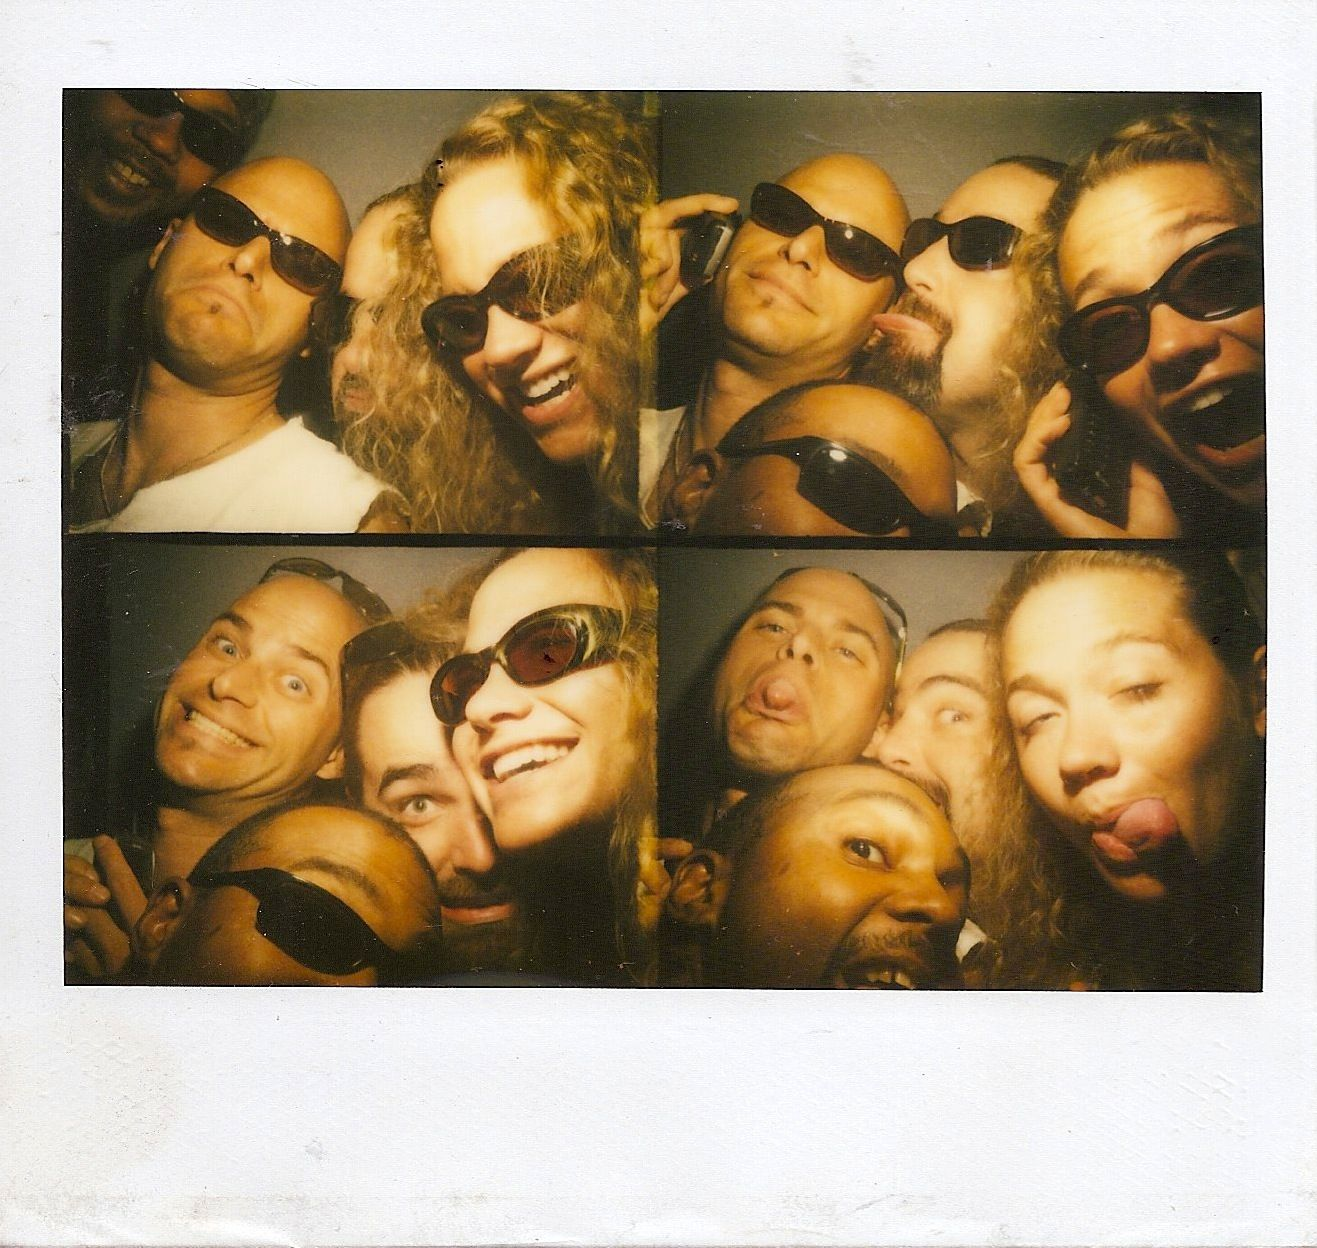 Photo booth band pick